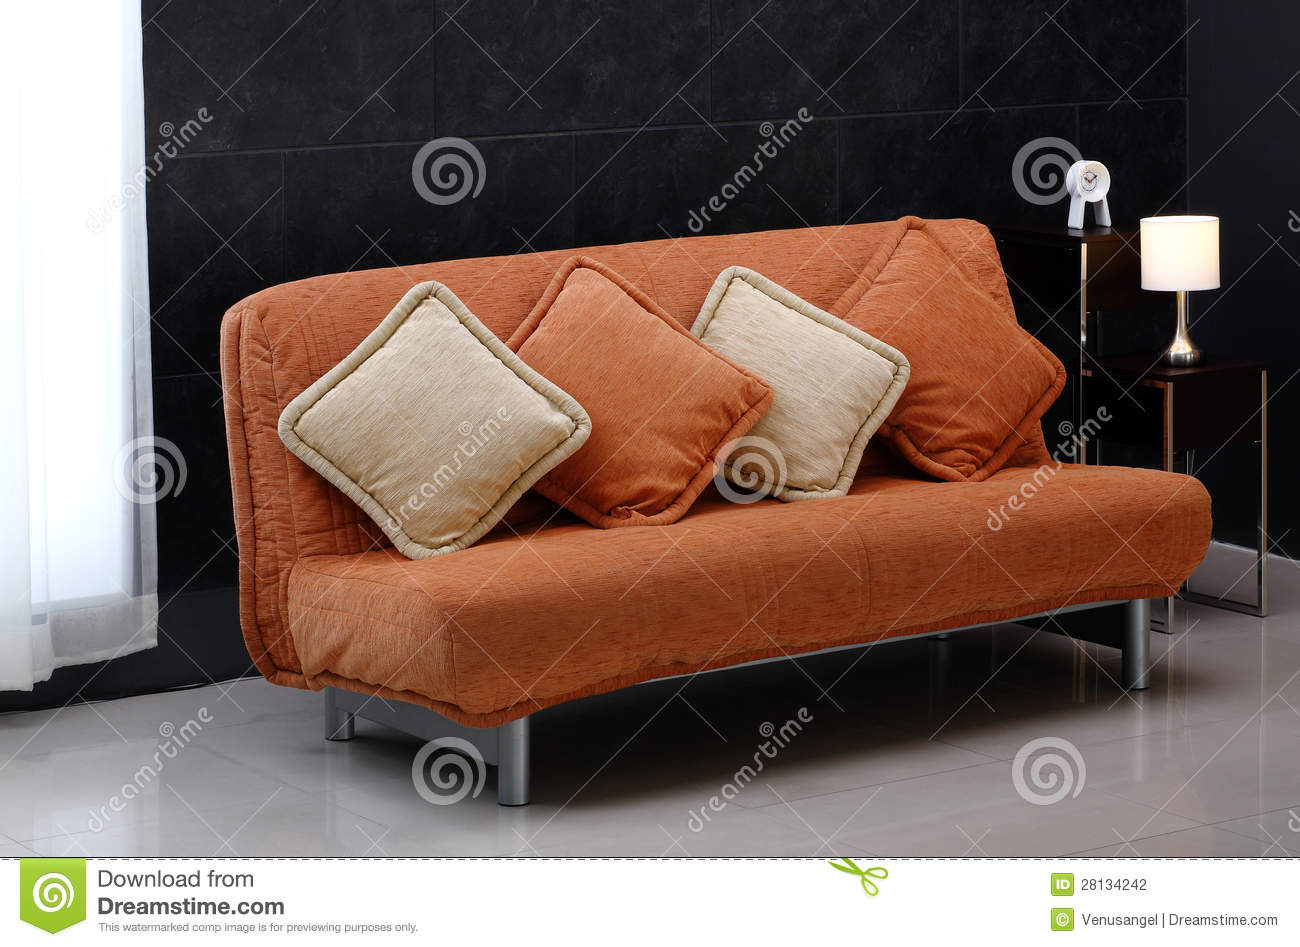 Sofa Bed In Dreams Sofa Bed Stock Photography Image 28134242